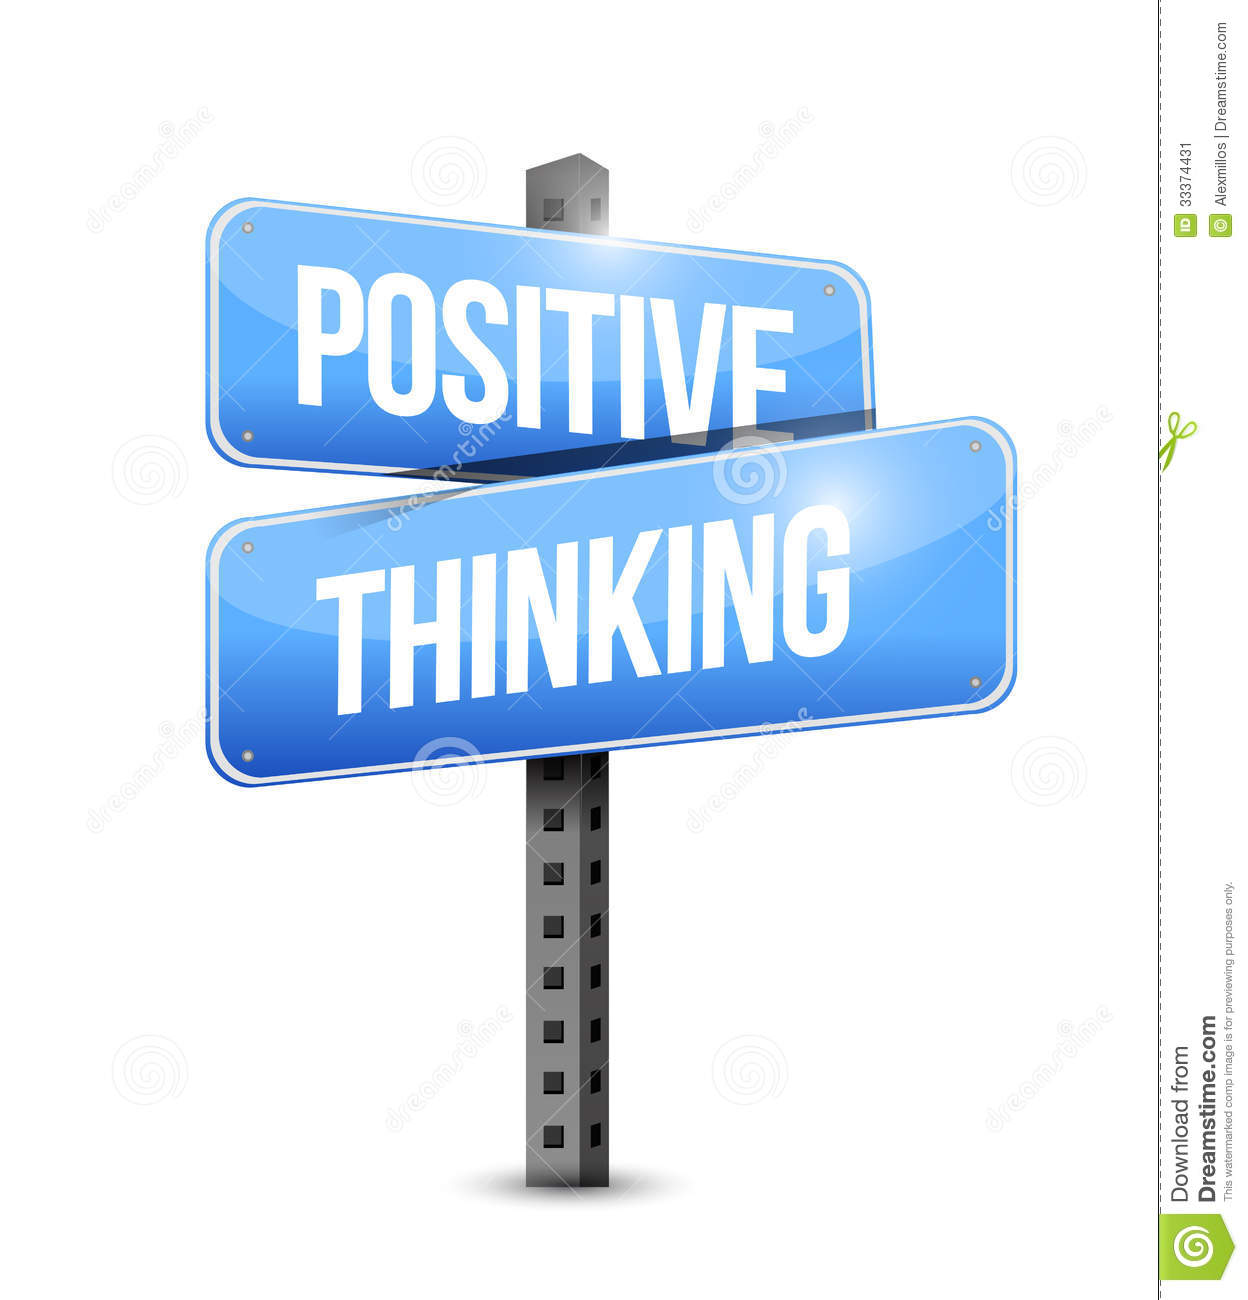 Positive Thinking Road Sign Stock Image   Image  33374431